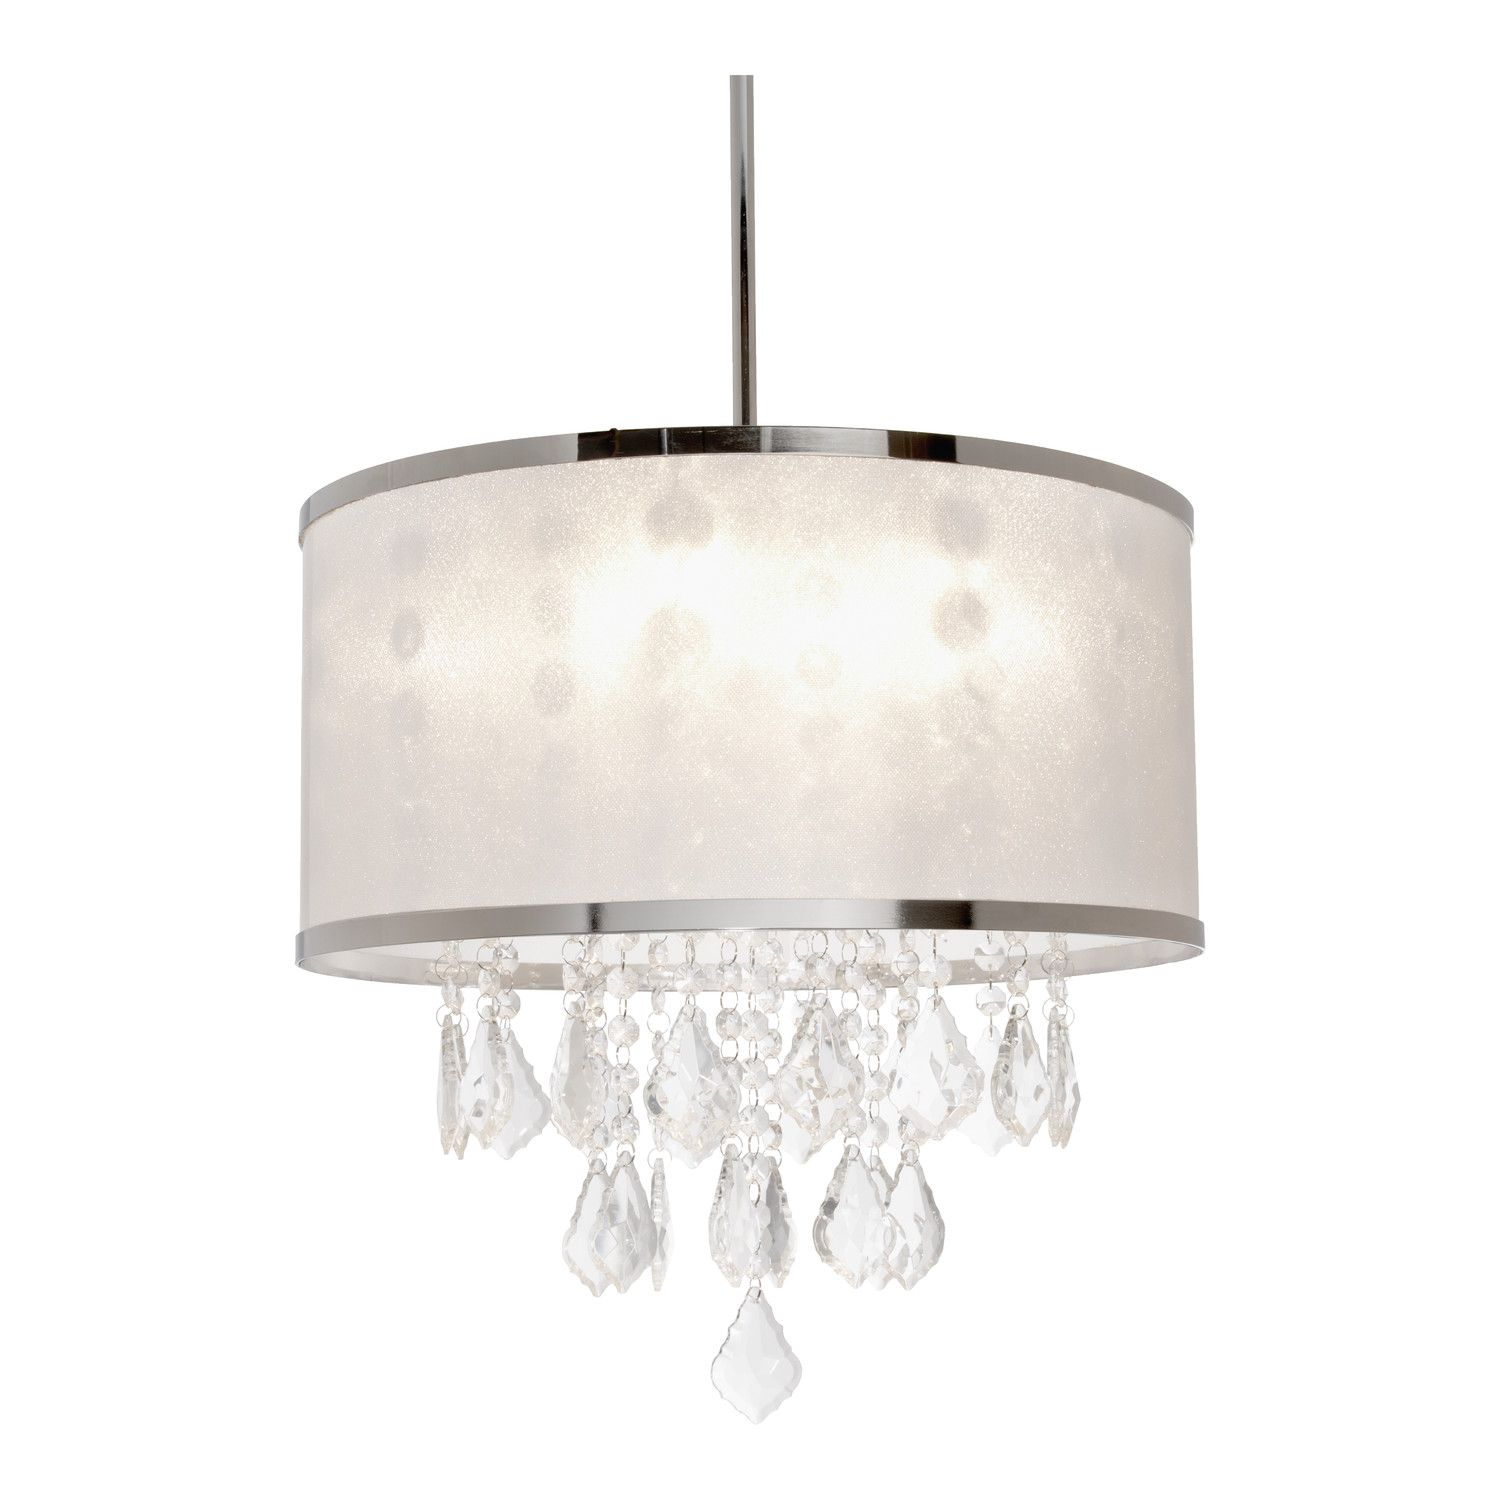 Bedroom Decor Small Crystal Chandeliers For Bedrooms Semi Flushmount Lighting Modern Crystal Chandelier Fixture Drum Chandelier Chandelier Lighting Chandelier,Best Places To Travel In The Us Right Now